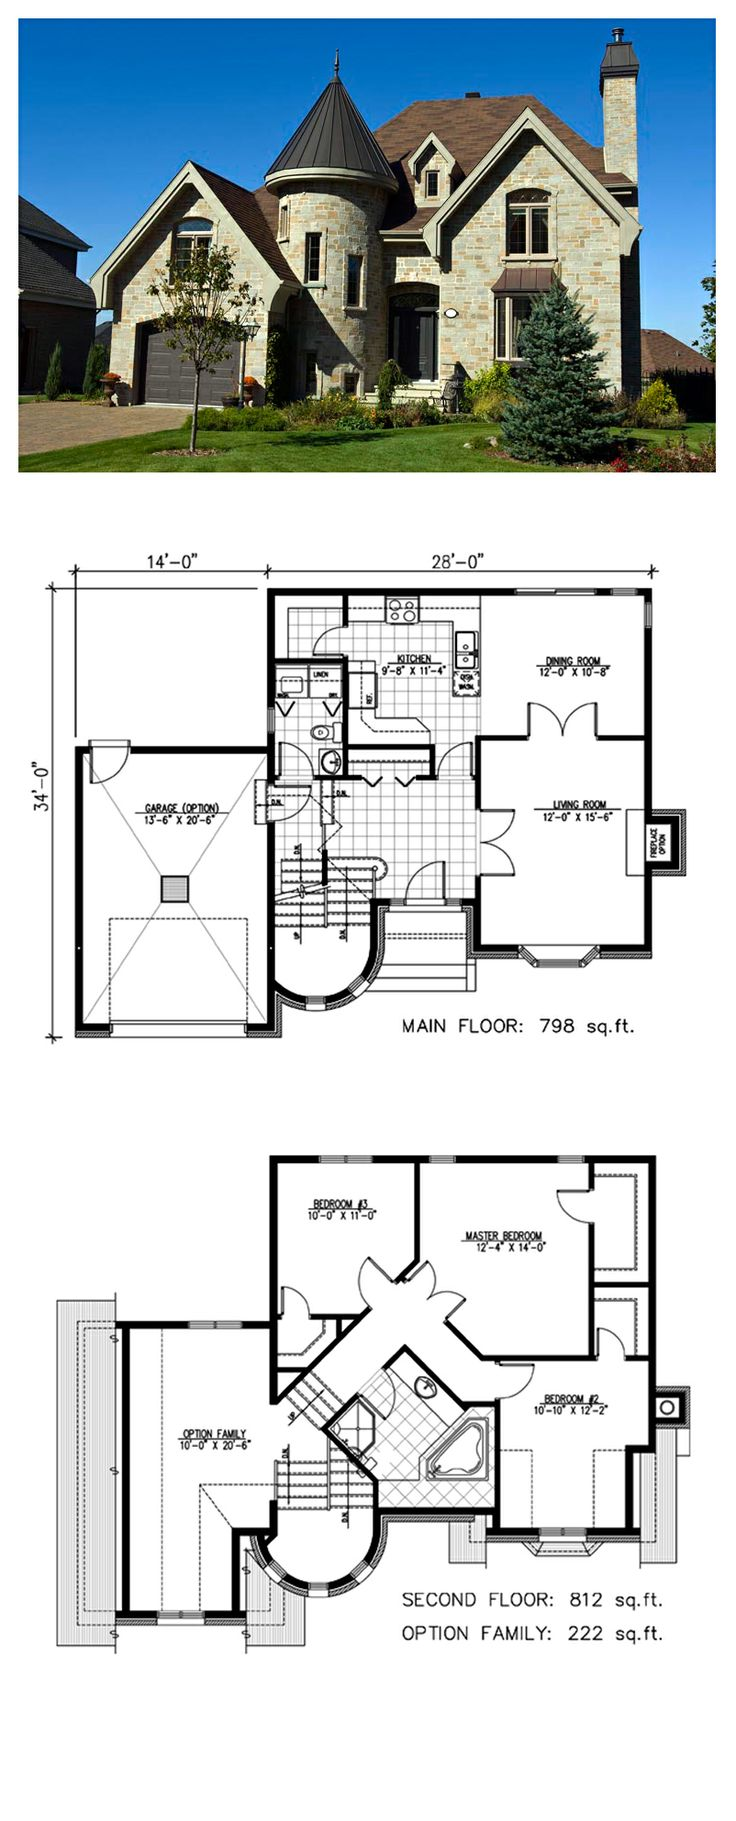 49 best victorian house plans images on pinterest victorian houses